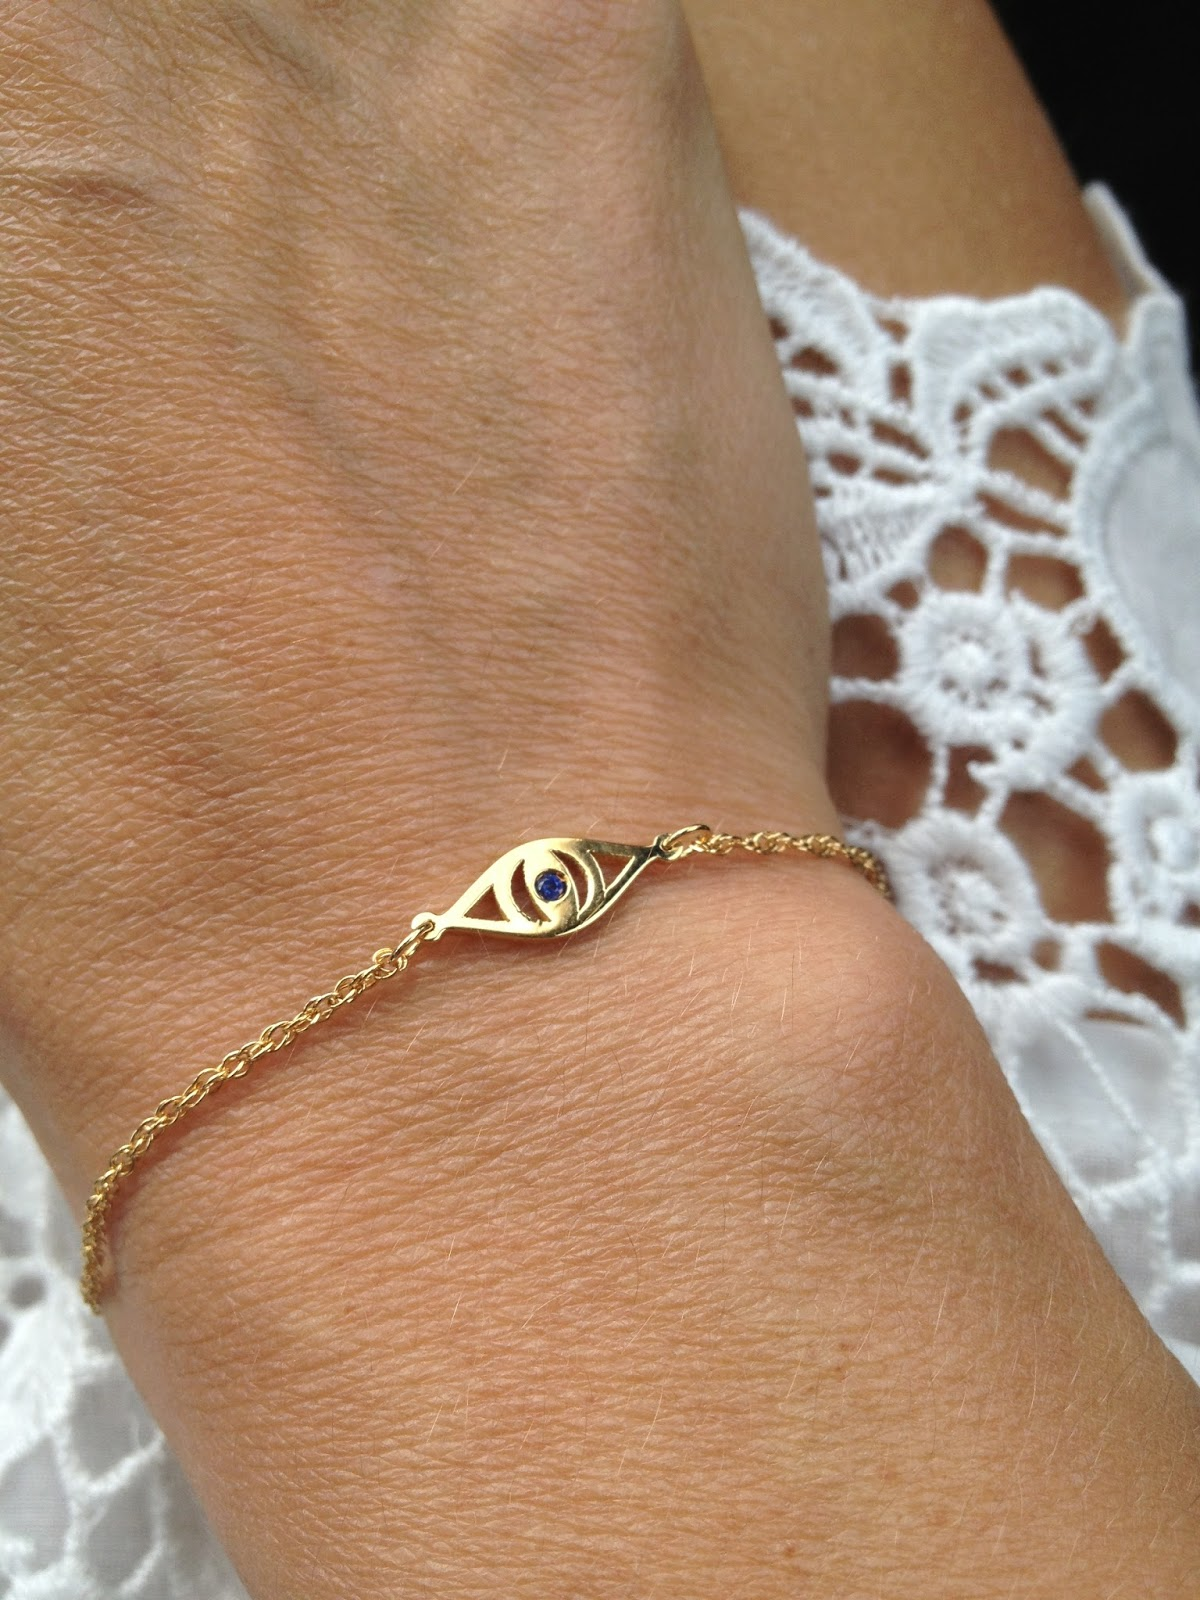 Bracelet From Jennifer Zeuner Typical Domestic This Week In Pics